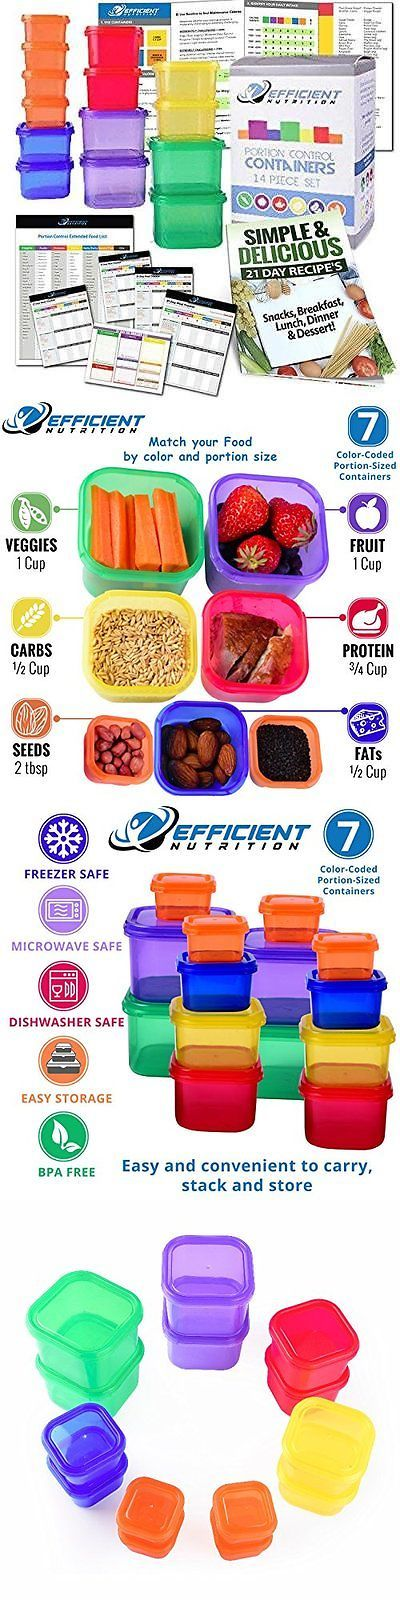 Fitness DVDs 109130: Portion Control Containers Deluxe Kit (14-Piece) With Complete Guide + 21 Day -> BUY IT NOW ONLY: $97.05 on eBay!